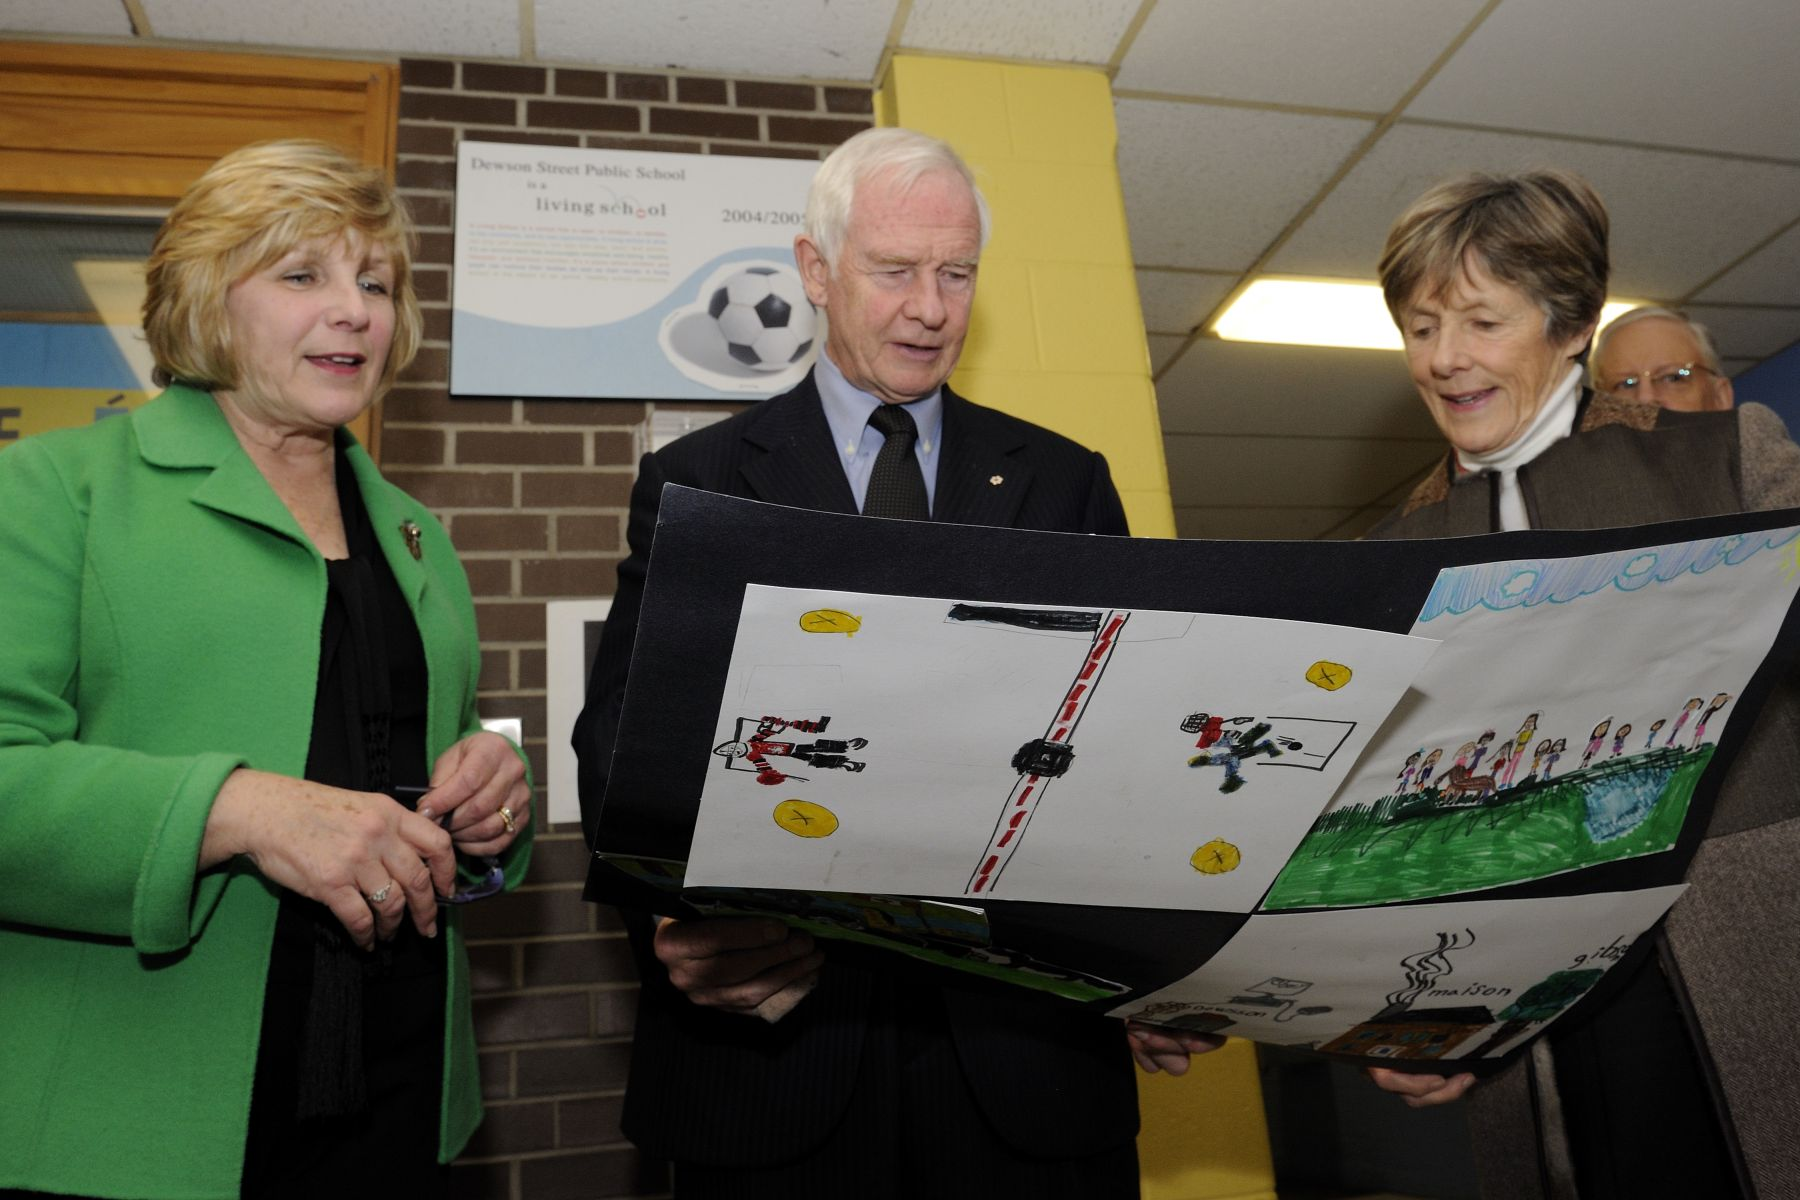 Upon their departure, Their Excellencies received drawing from students to thank them for their visit.